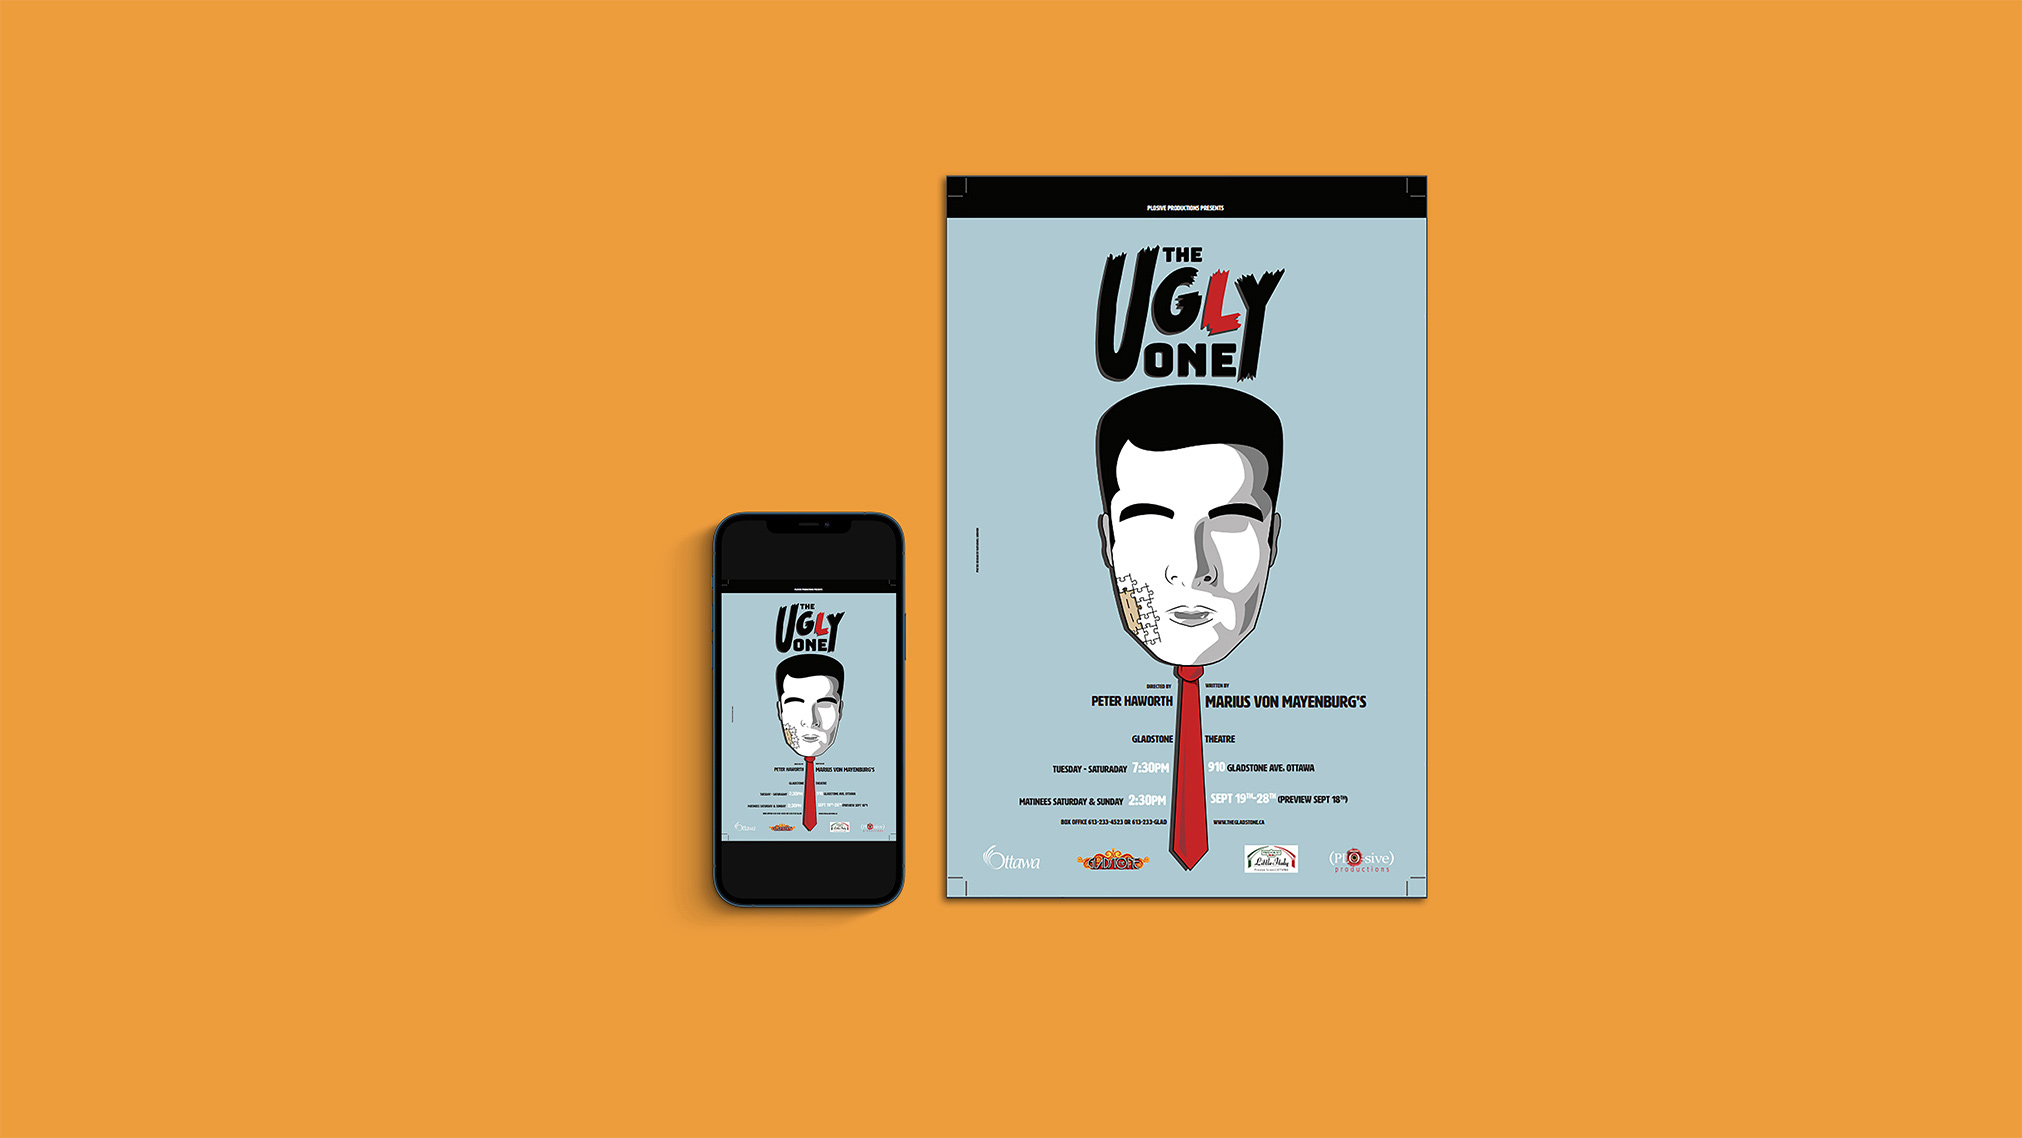 This was a digital design/print project I did for the play The Ugly One.